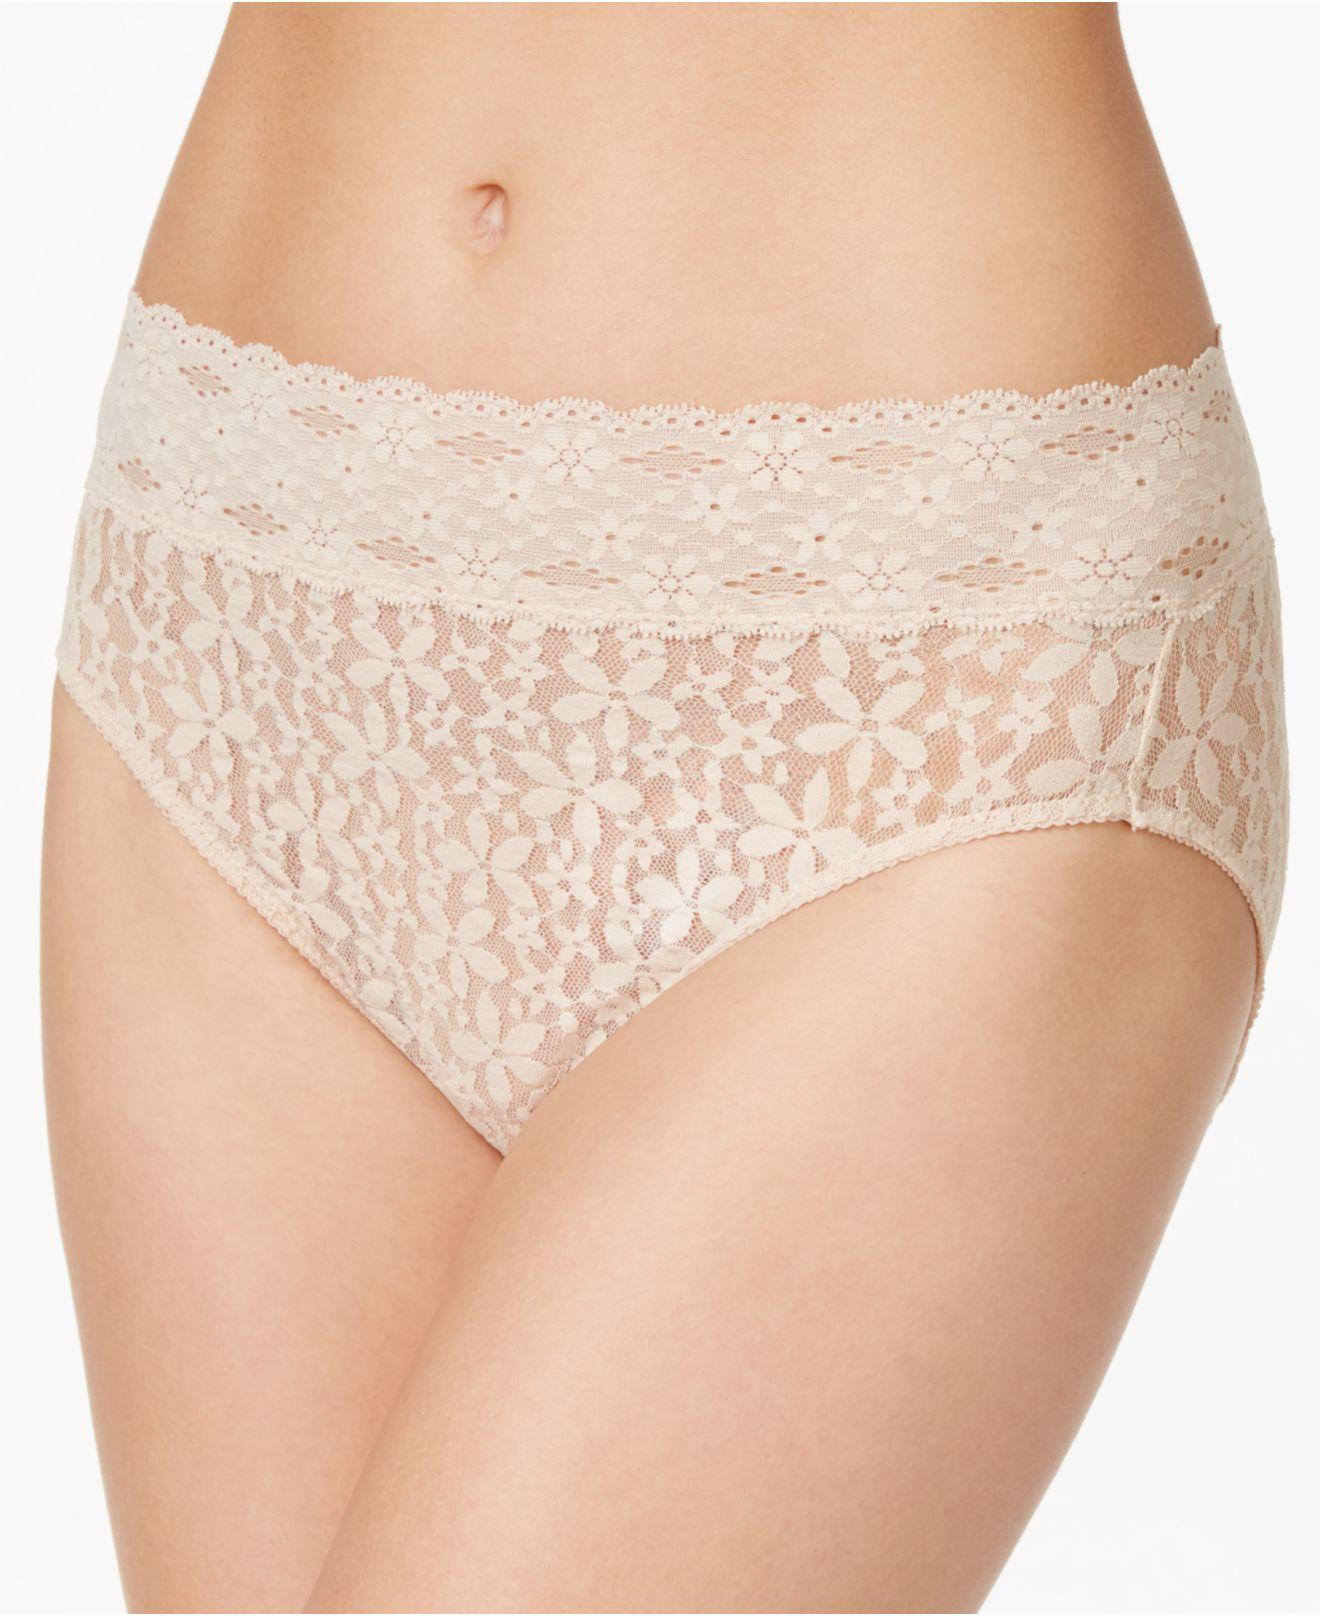 18c49bbba076 Lyst - Wacoal Halo Sheer Lace Hi Cut Brief 870305 in Natural